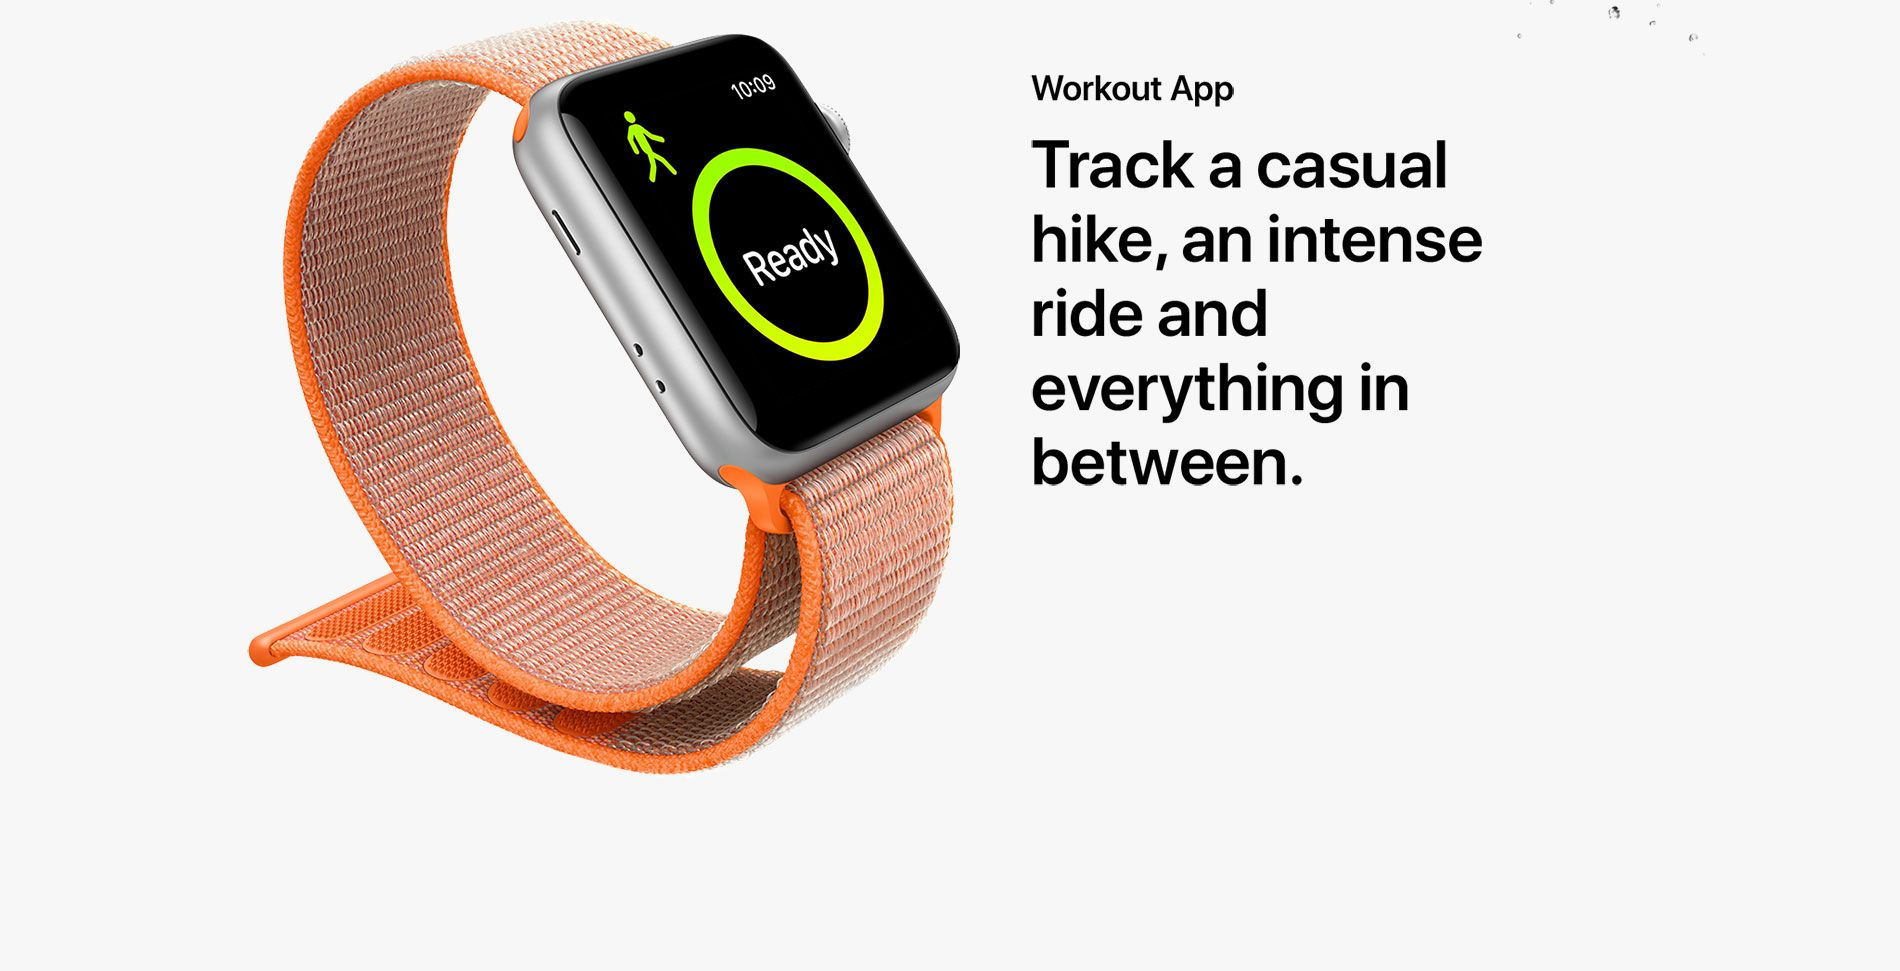 Workout App - Track a casual hike, an intense ride and everything in between